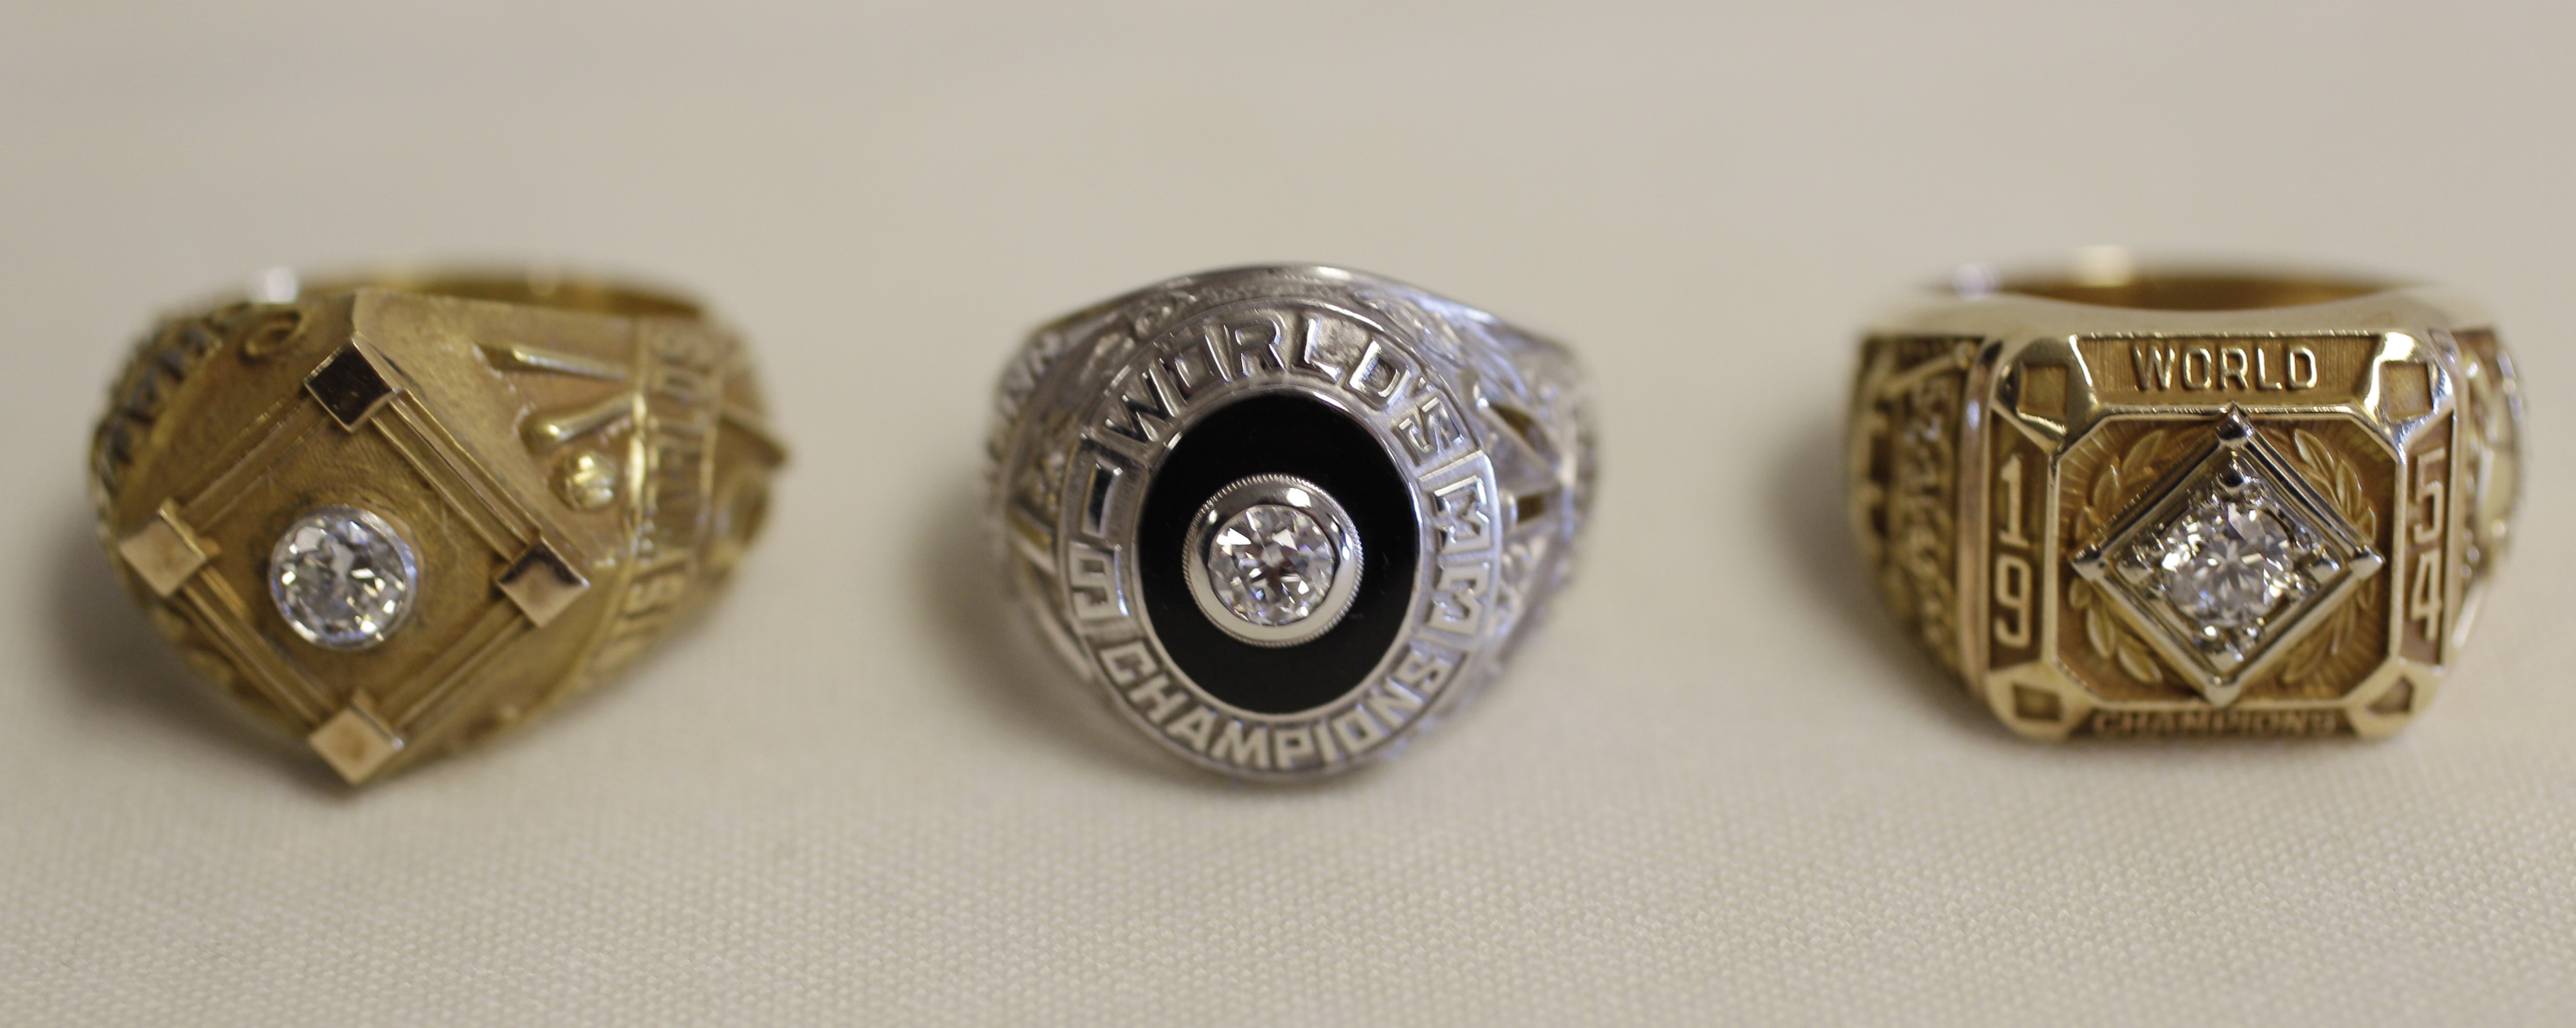 <div class='meta'><div class='origin-logo' data-origin='AP'></div><span class='caption-text' data-credit='AP Photo/Eric Risberg'>New York Giants World Series championship rings, from left, from 1922, 1933 and 1954 on display.</span></div>